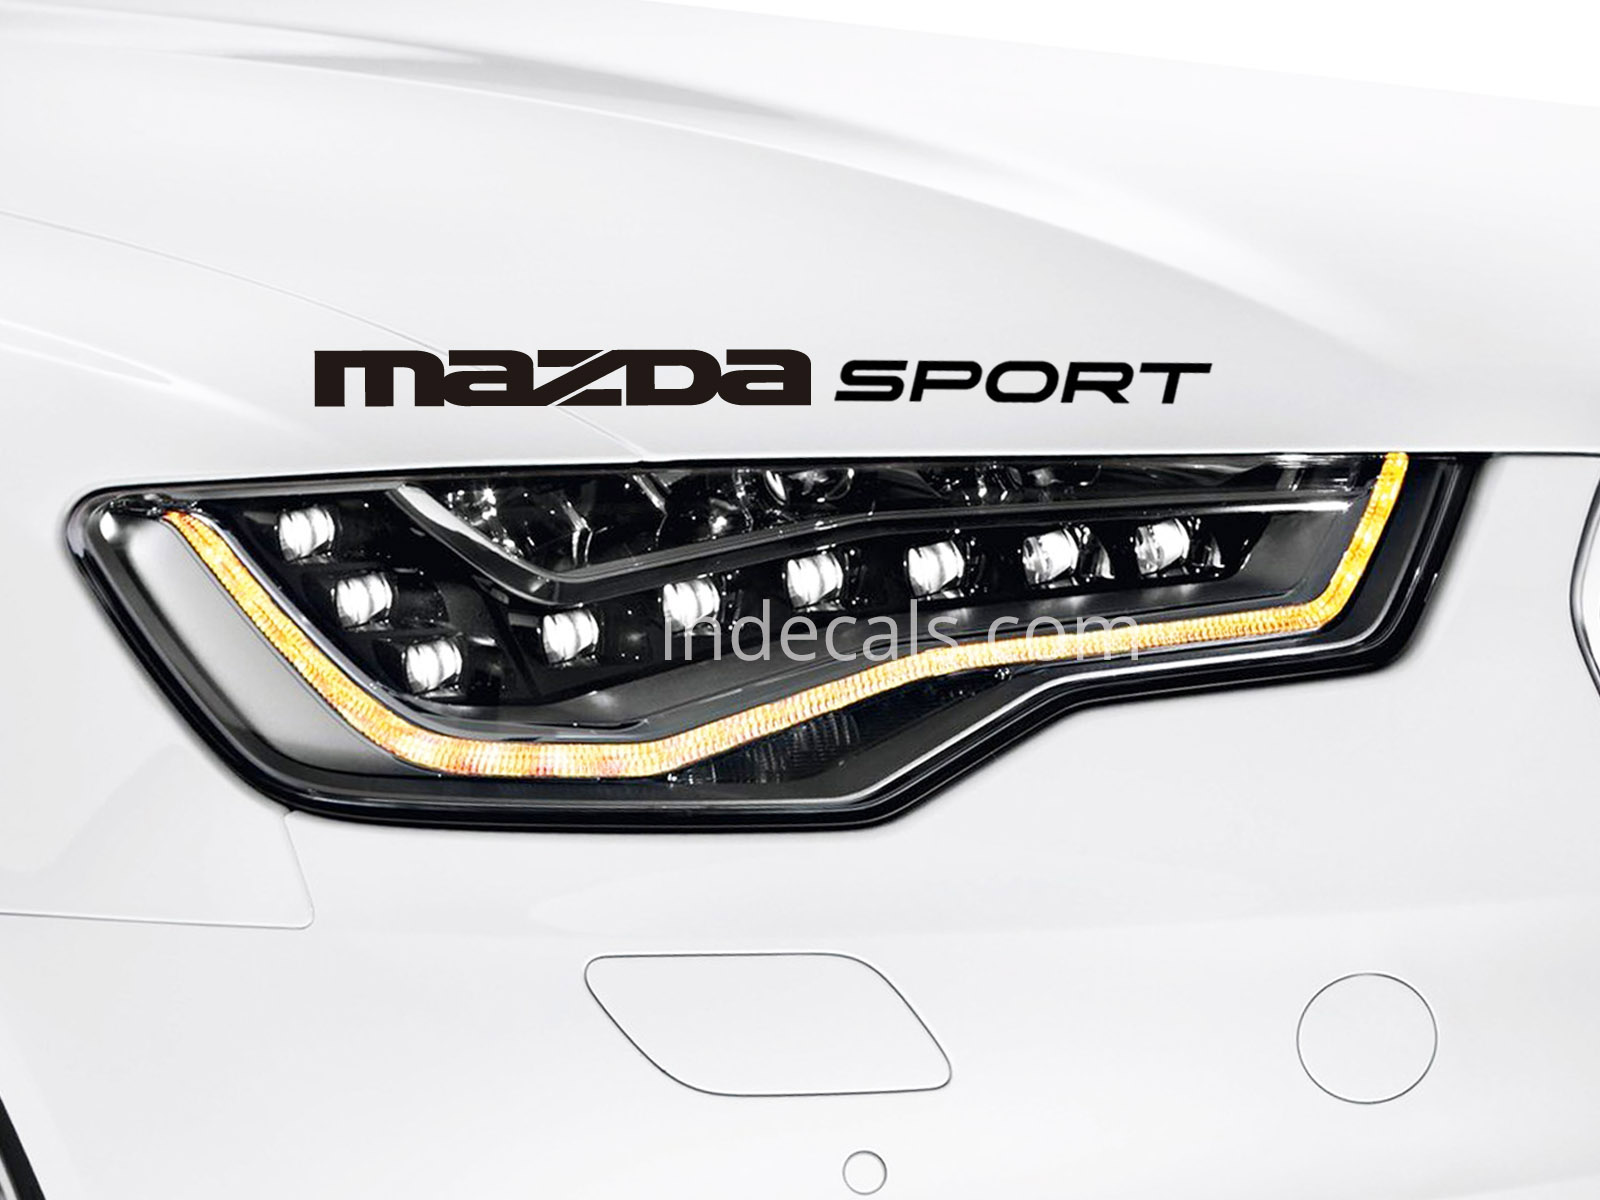 1 x Mazda Sport Sticker - Black